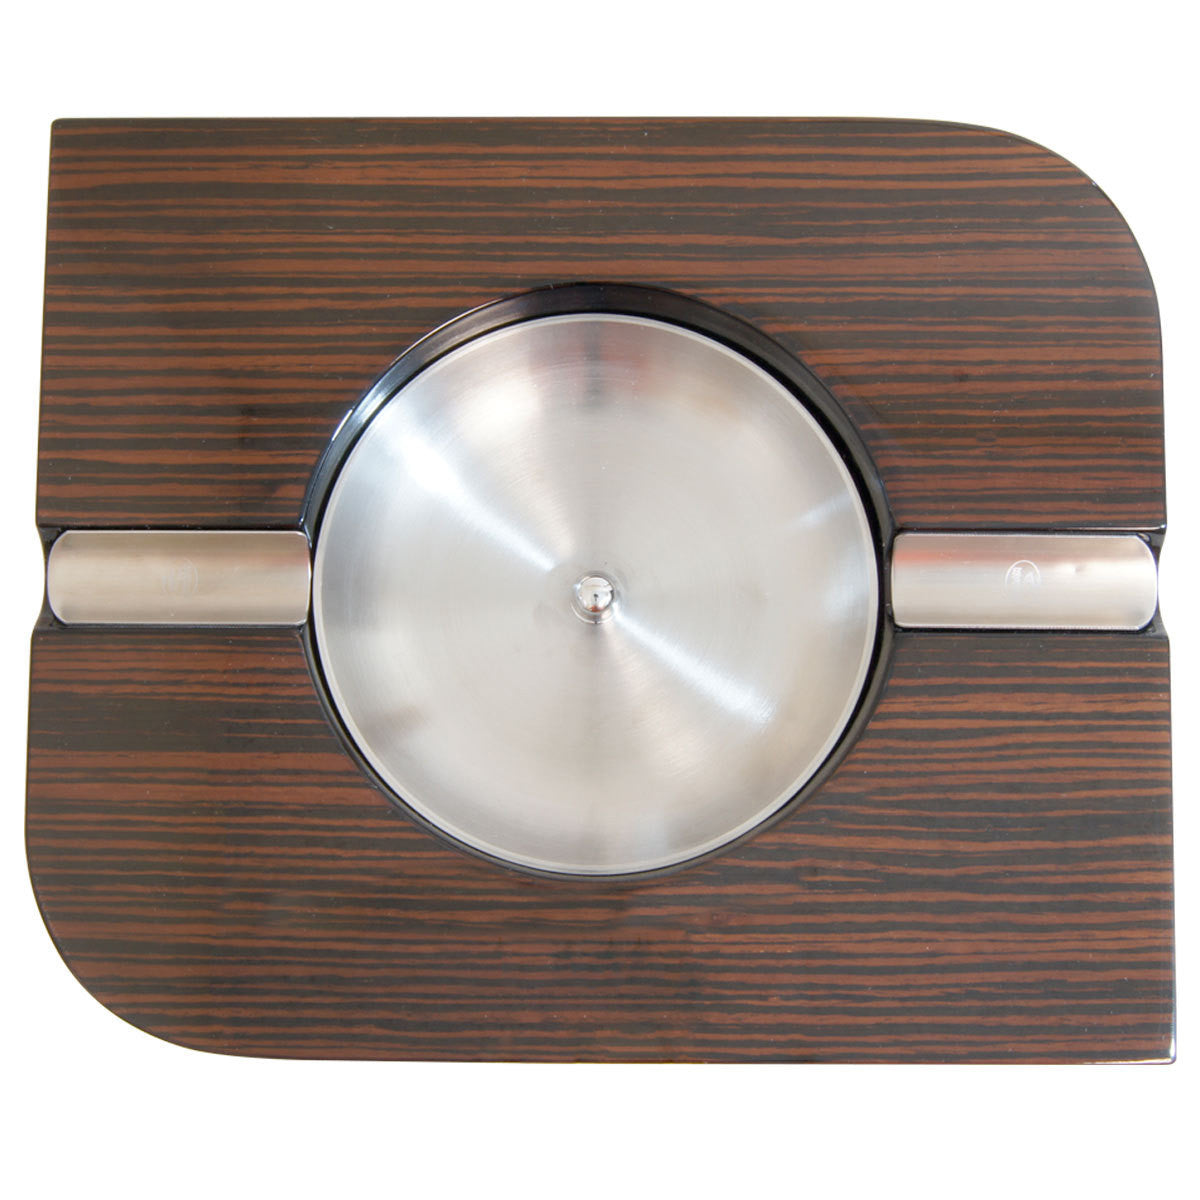 Tesoro Ebony Wood Cigar Ashtray - Humidors Wholesaler